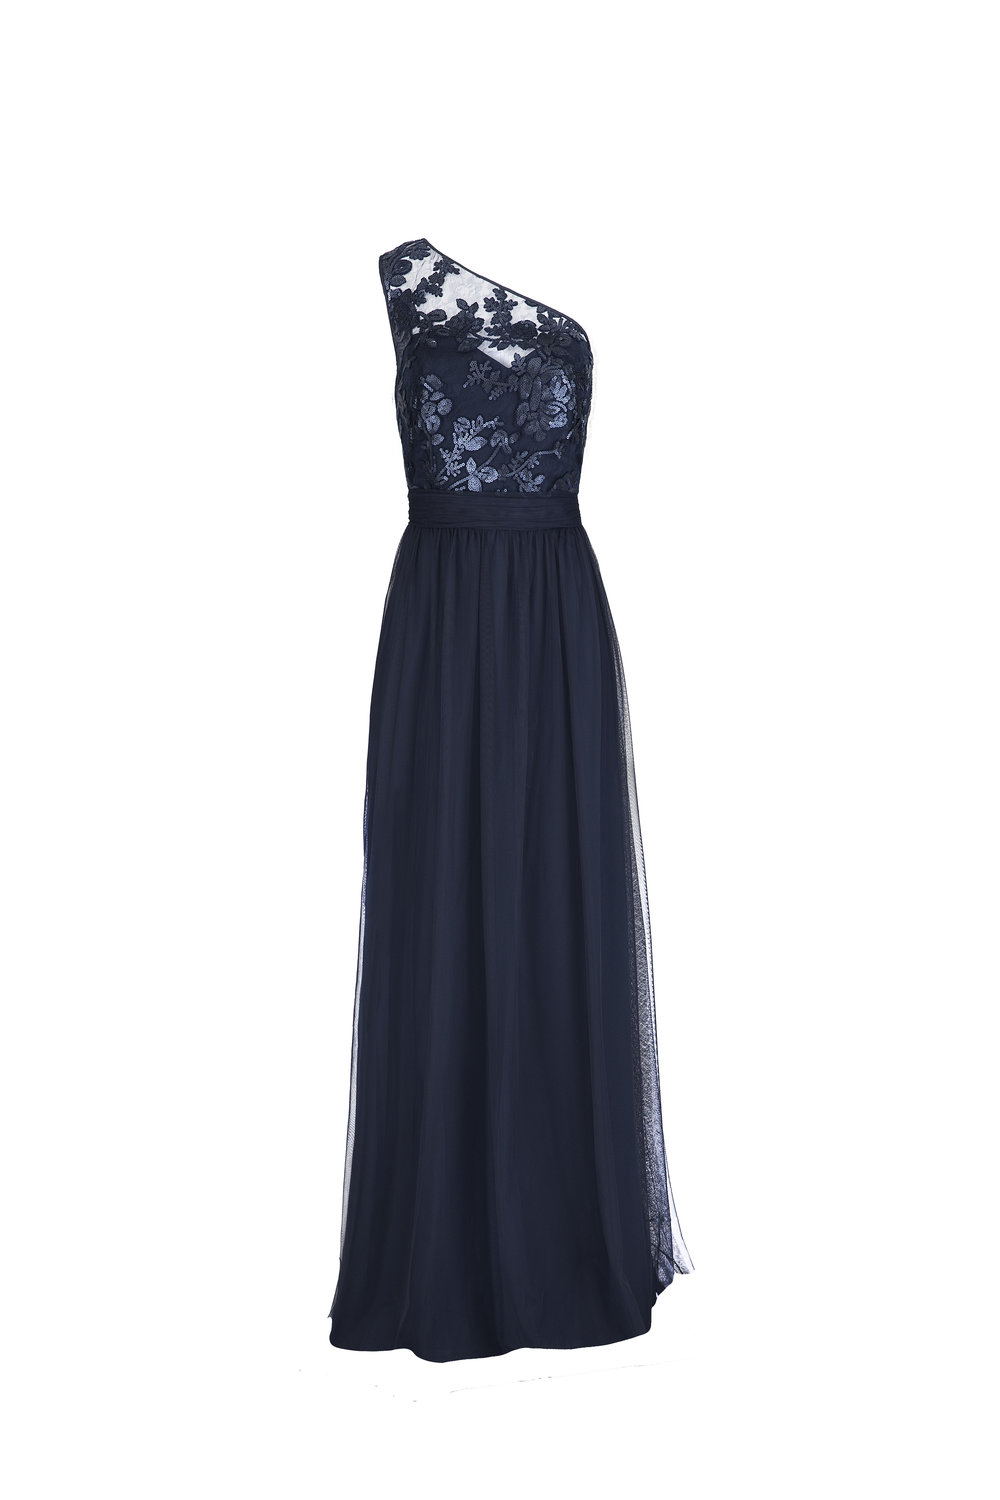 Copy of Amsale Ashlynn GB040 Navy Sequin Lace